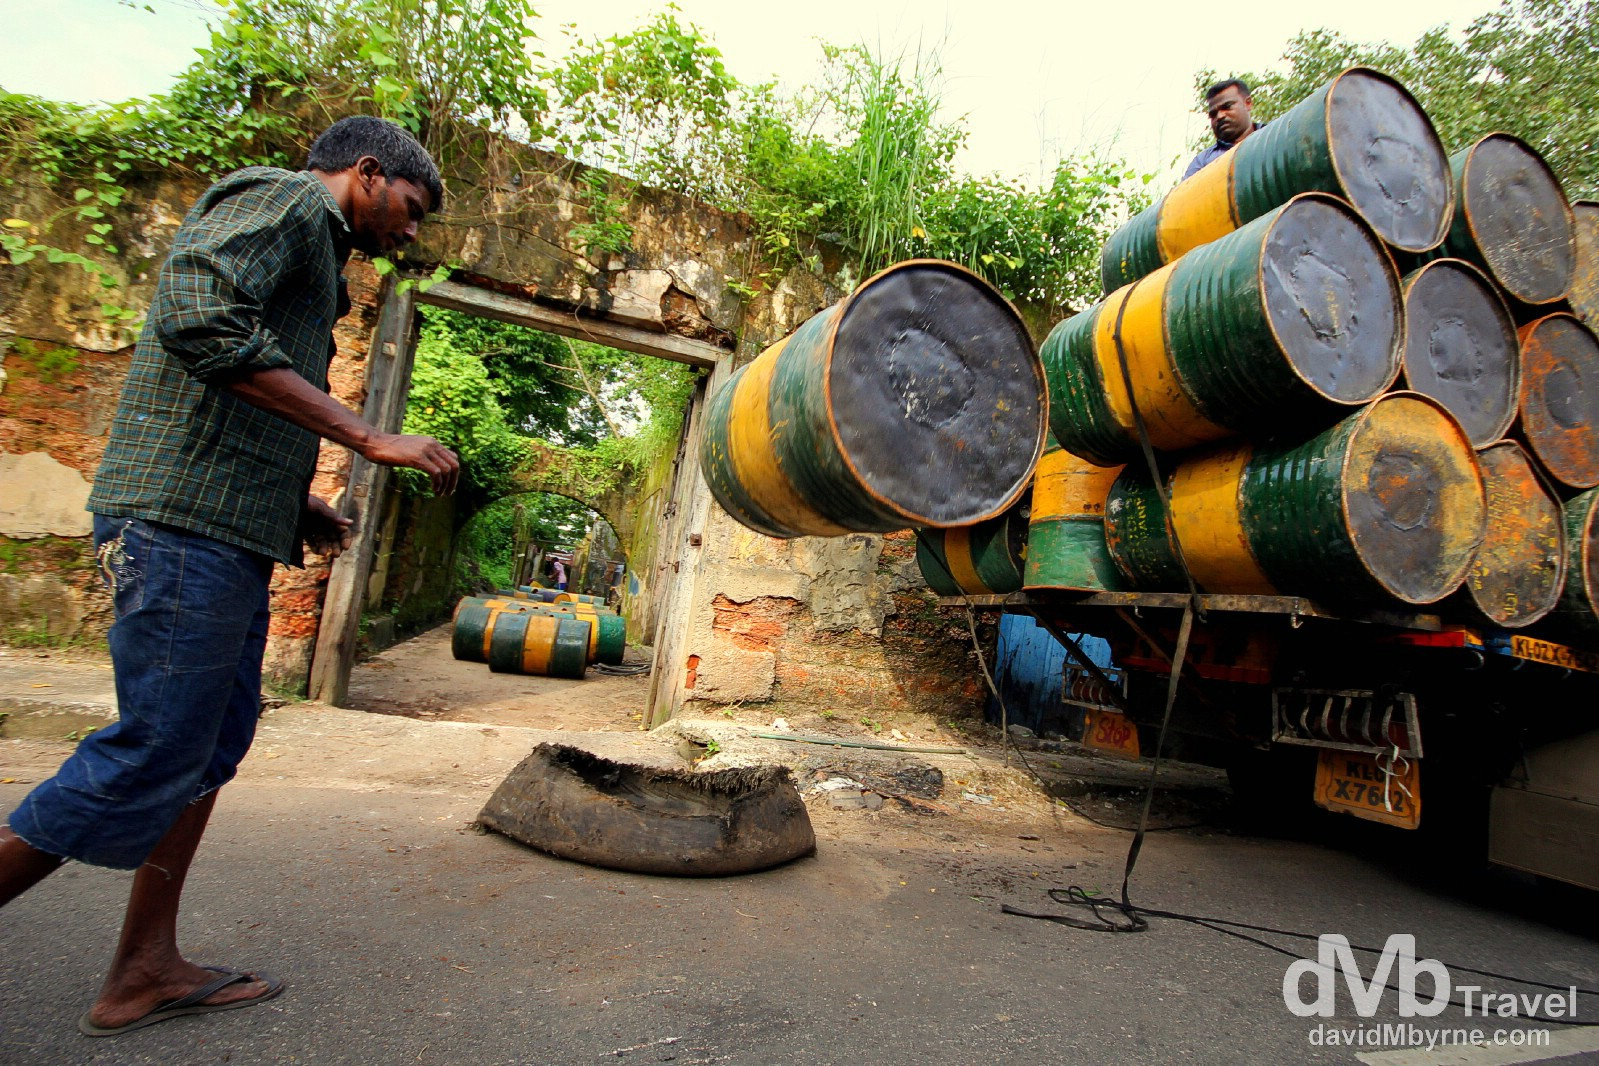 Unloading activities on Bazaar Road in Forth Cochin, Kerala, India. September 18th 2012.